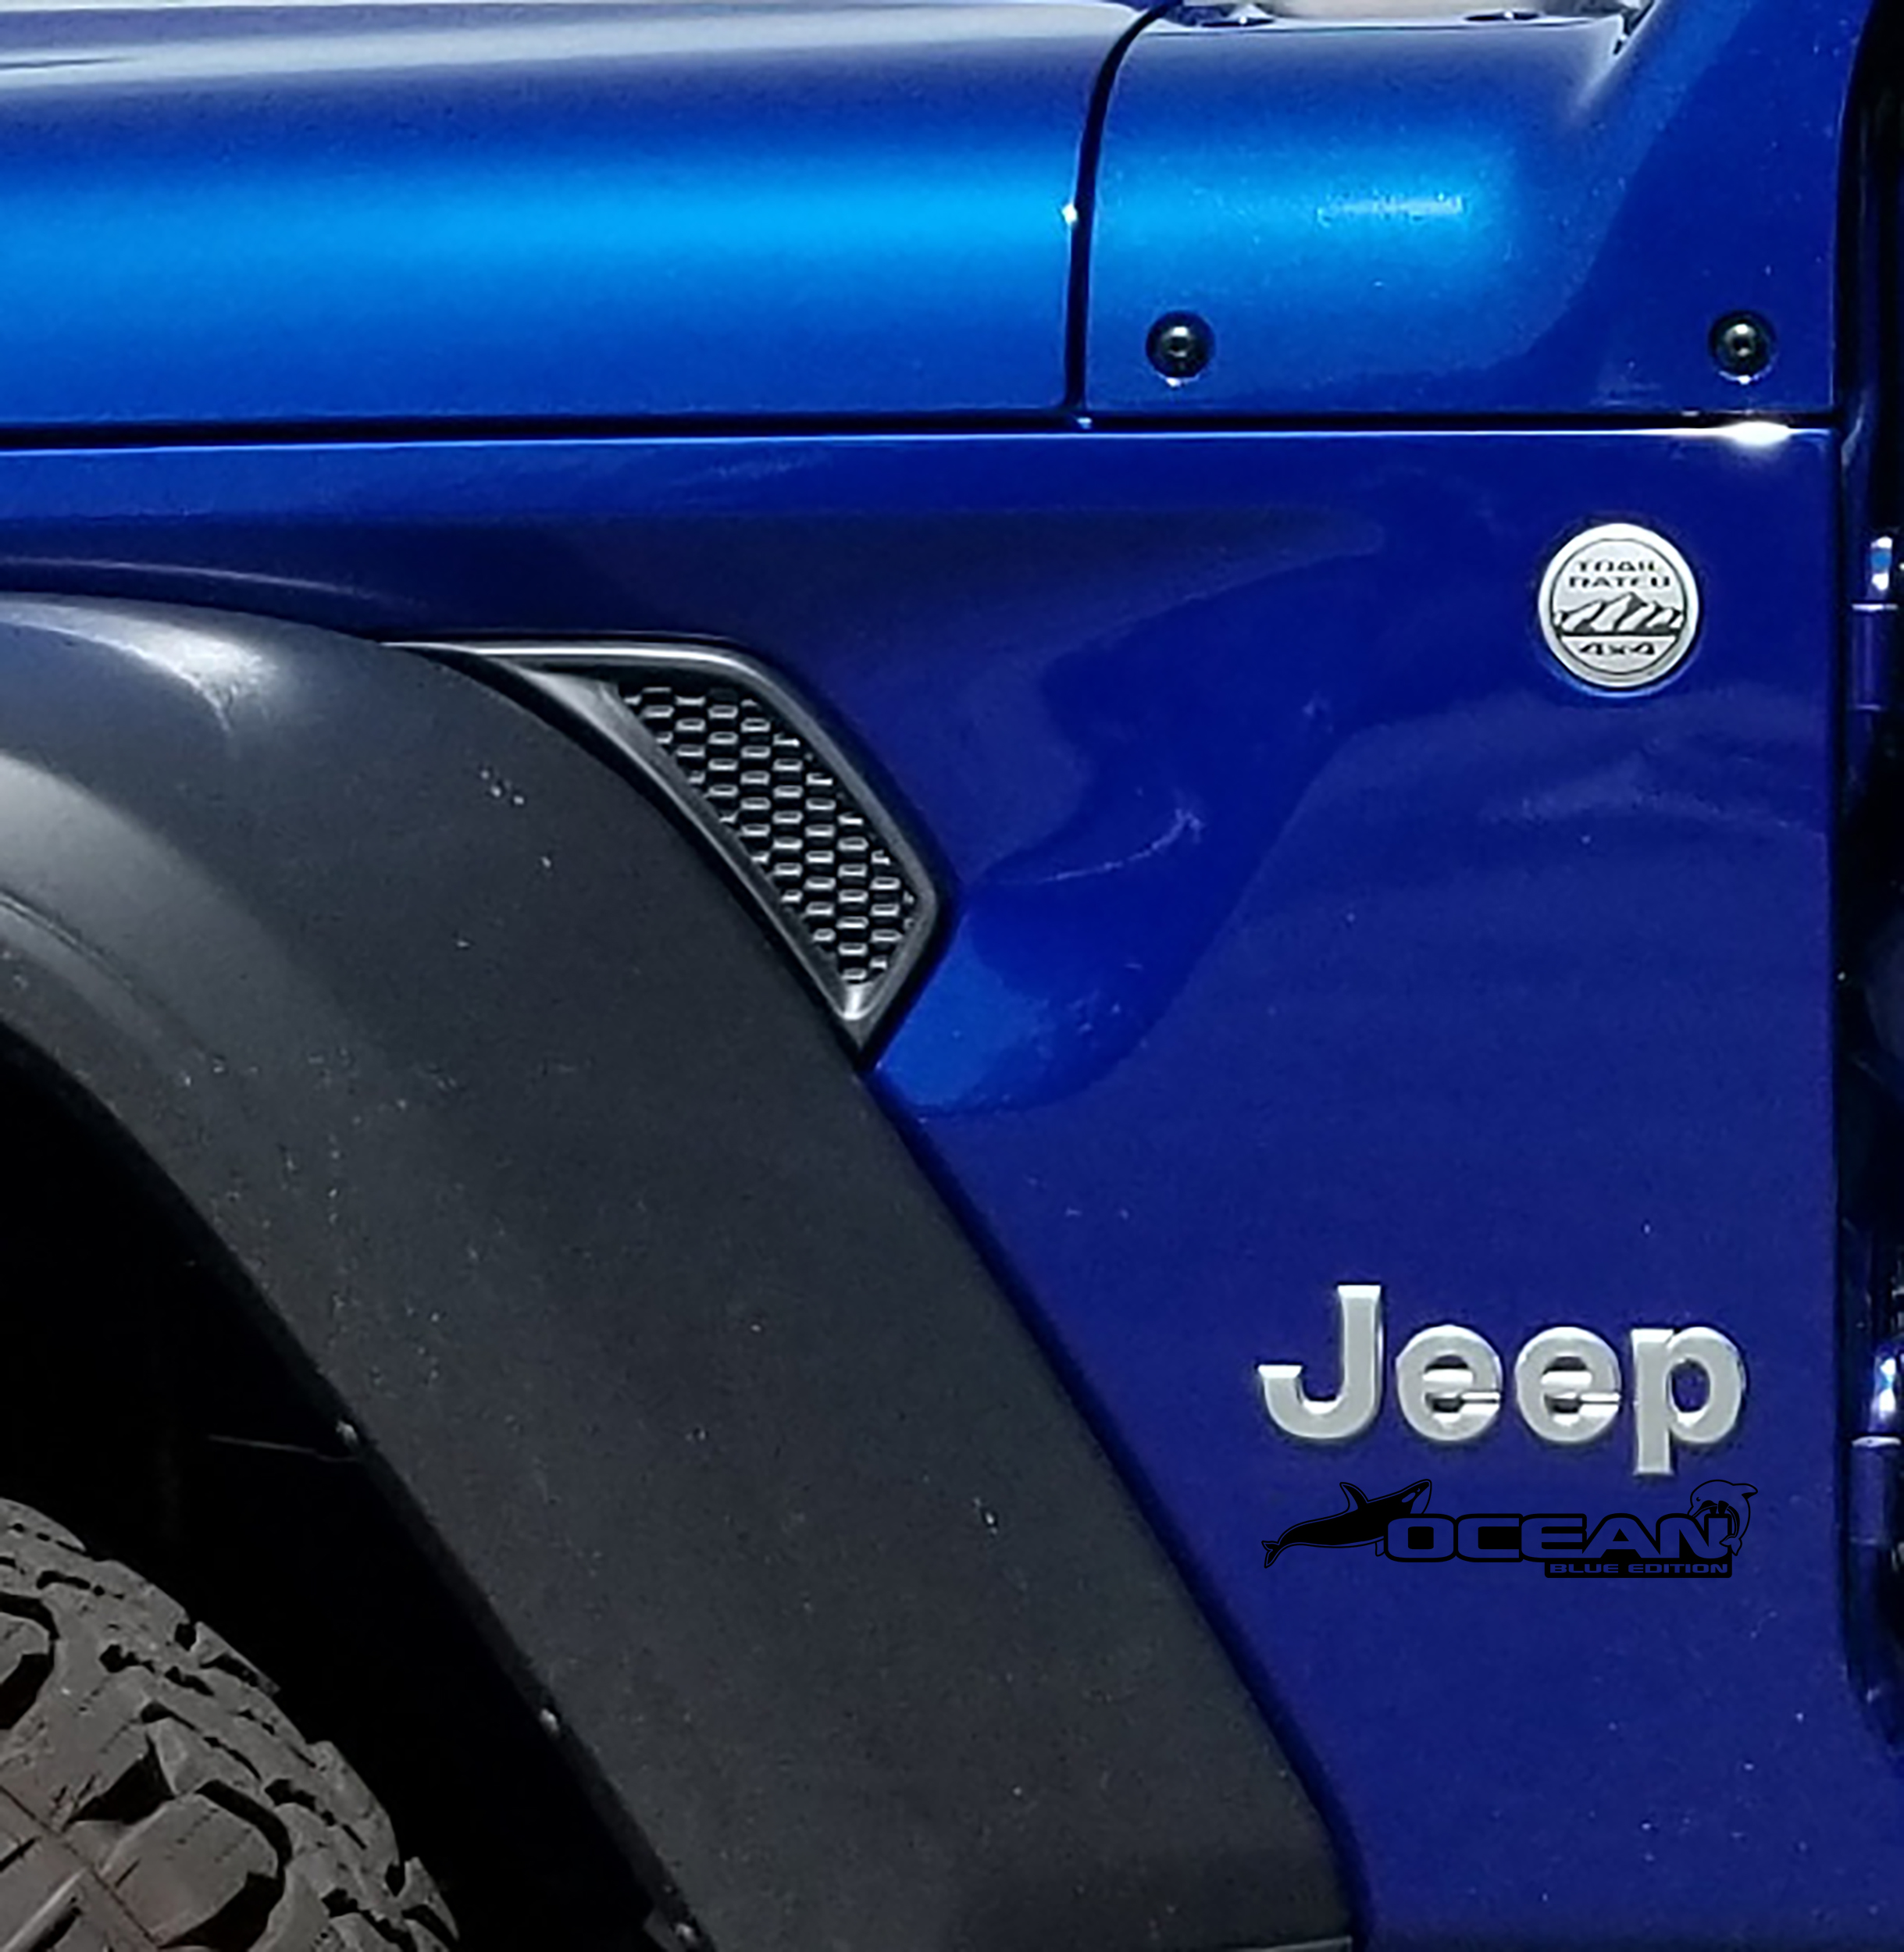 Fender Decals For Wrangler/Gladiator - JL/JT Ocean Blue Edition Decal (Pair)